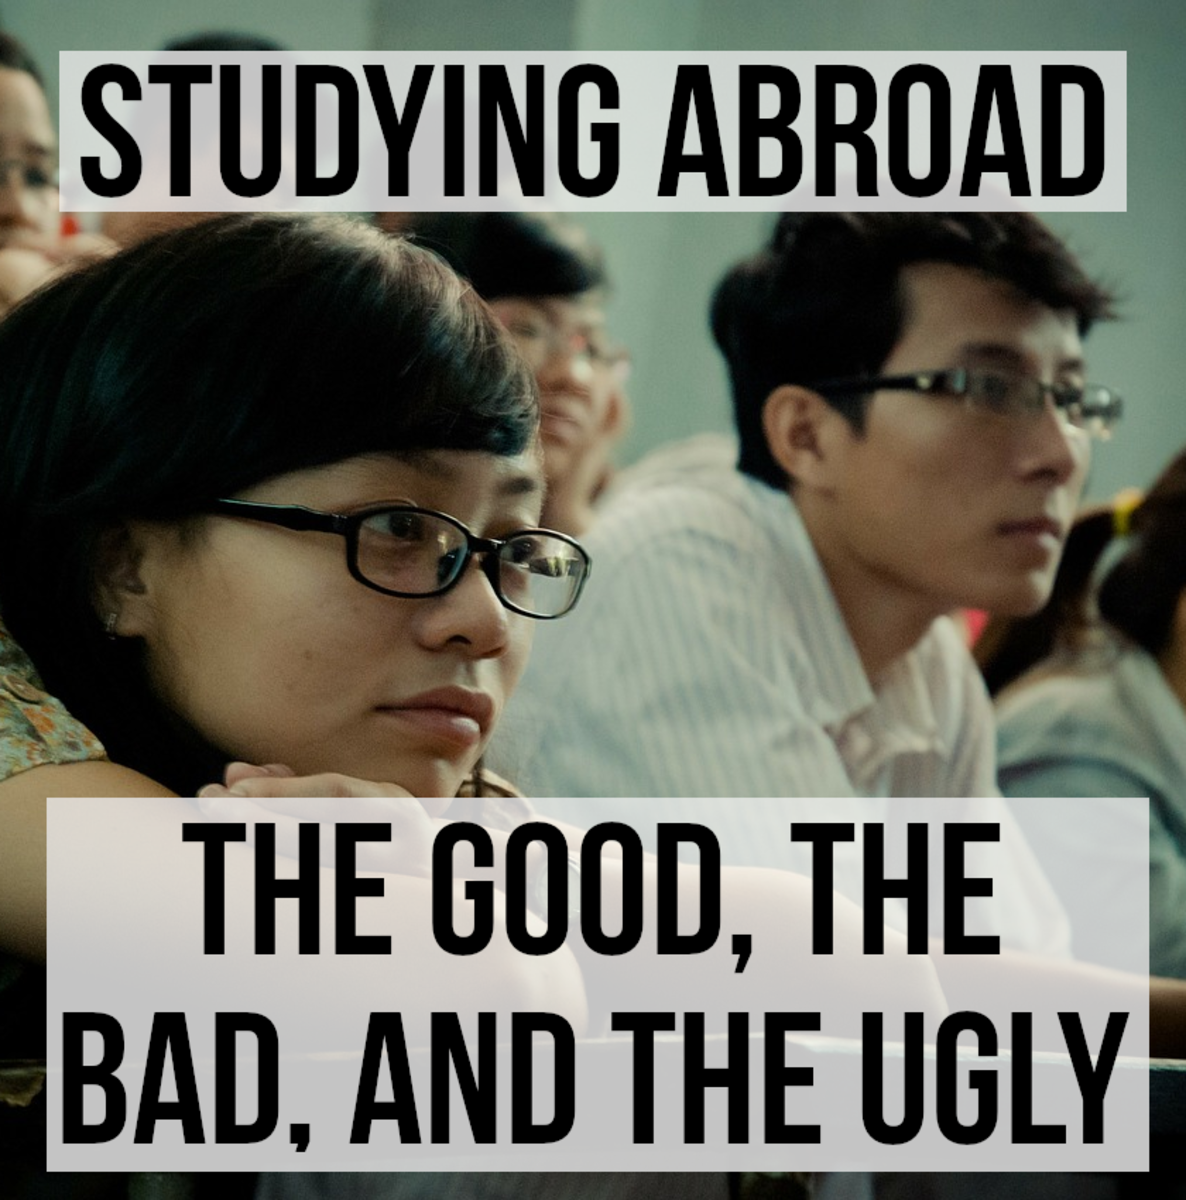 Studying abroad can bring with it many advantages, it often broadens the mind and deepens the learning experience.  There are disadvantages too, however, increased education costs, as well as language and cultural barriers to overcome, for instance.